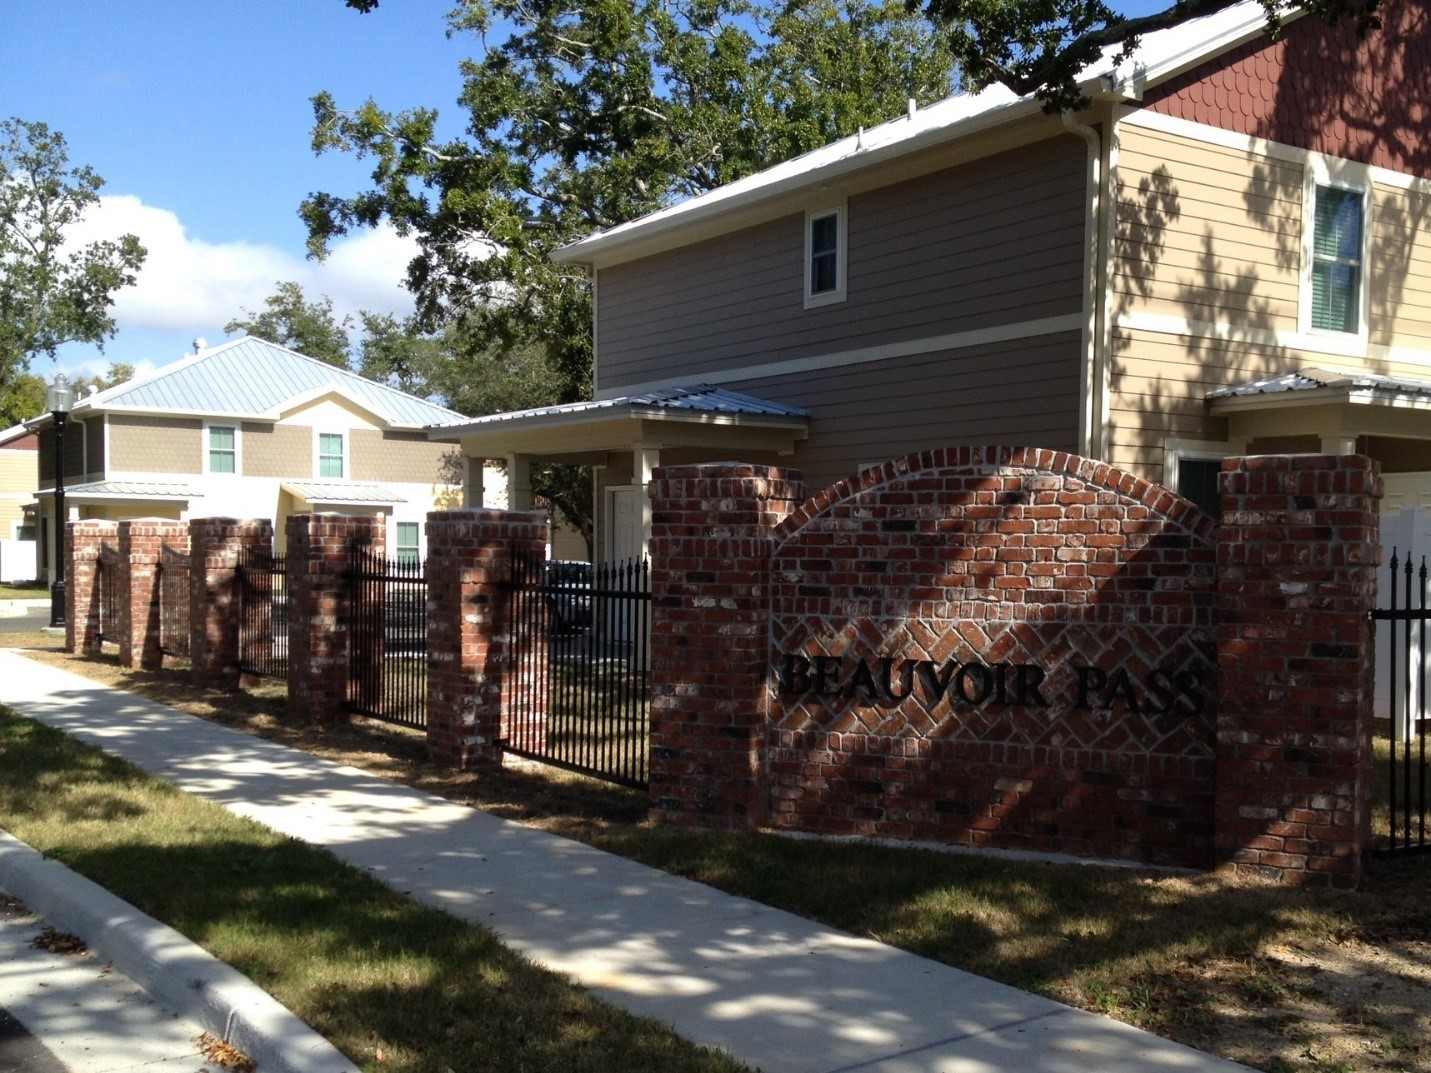 Image of Beauvoir Pass Apartments in Biloxi, Mississippi